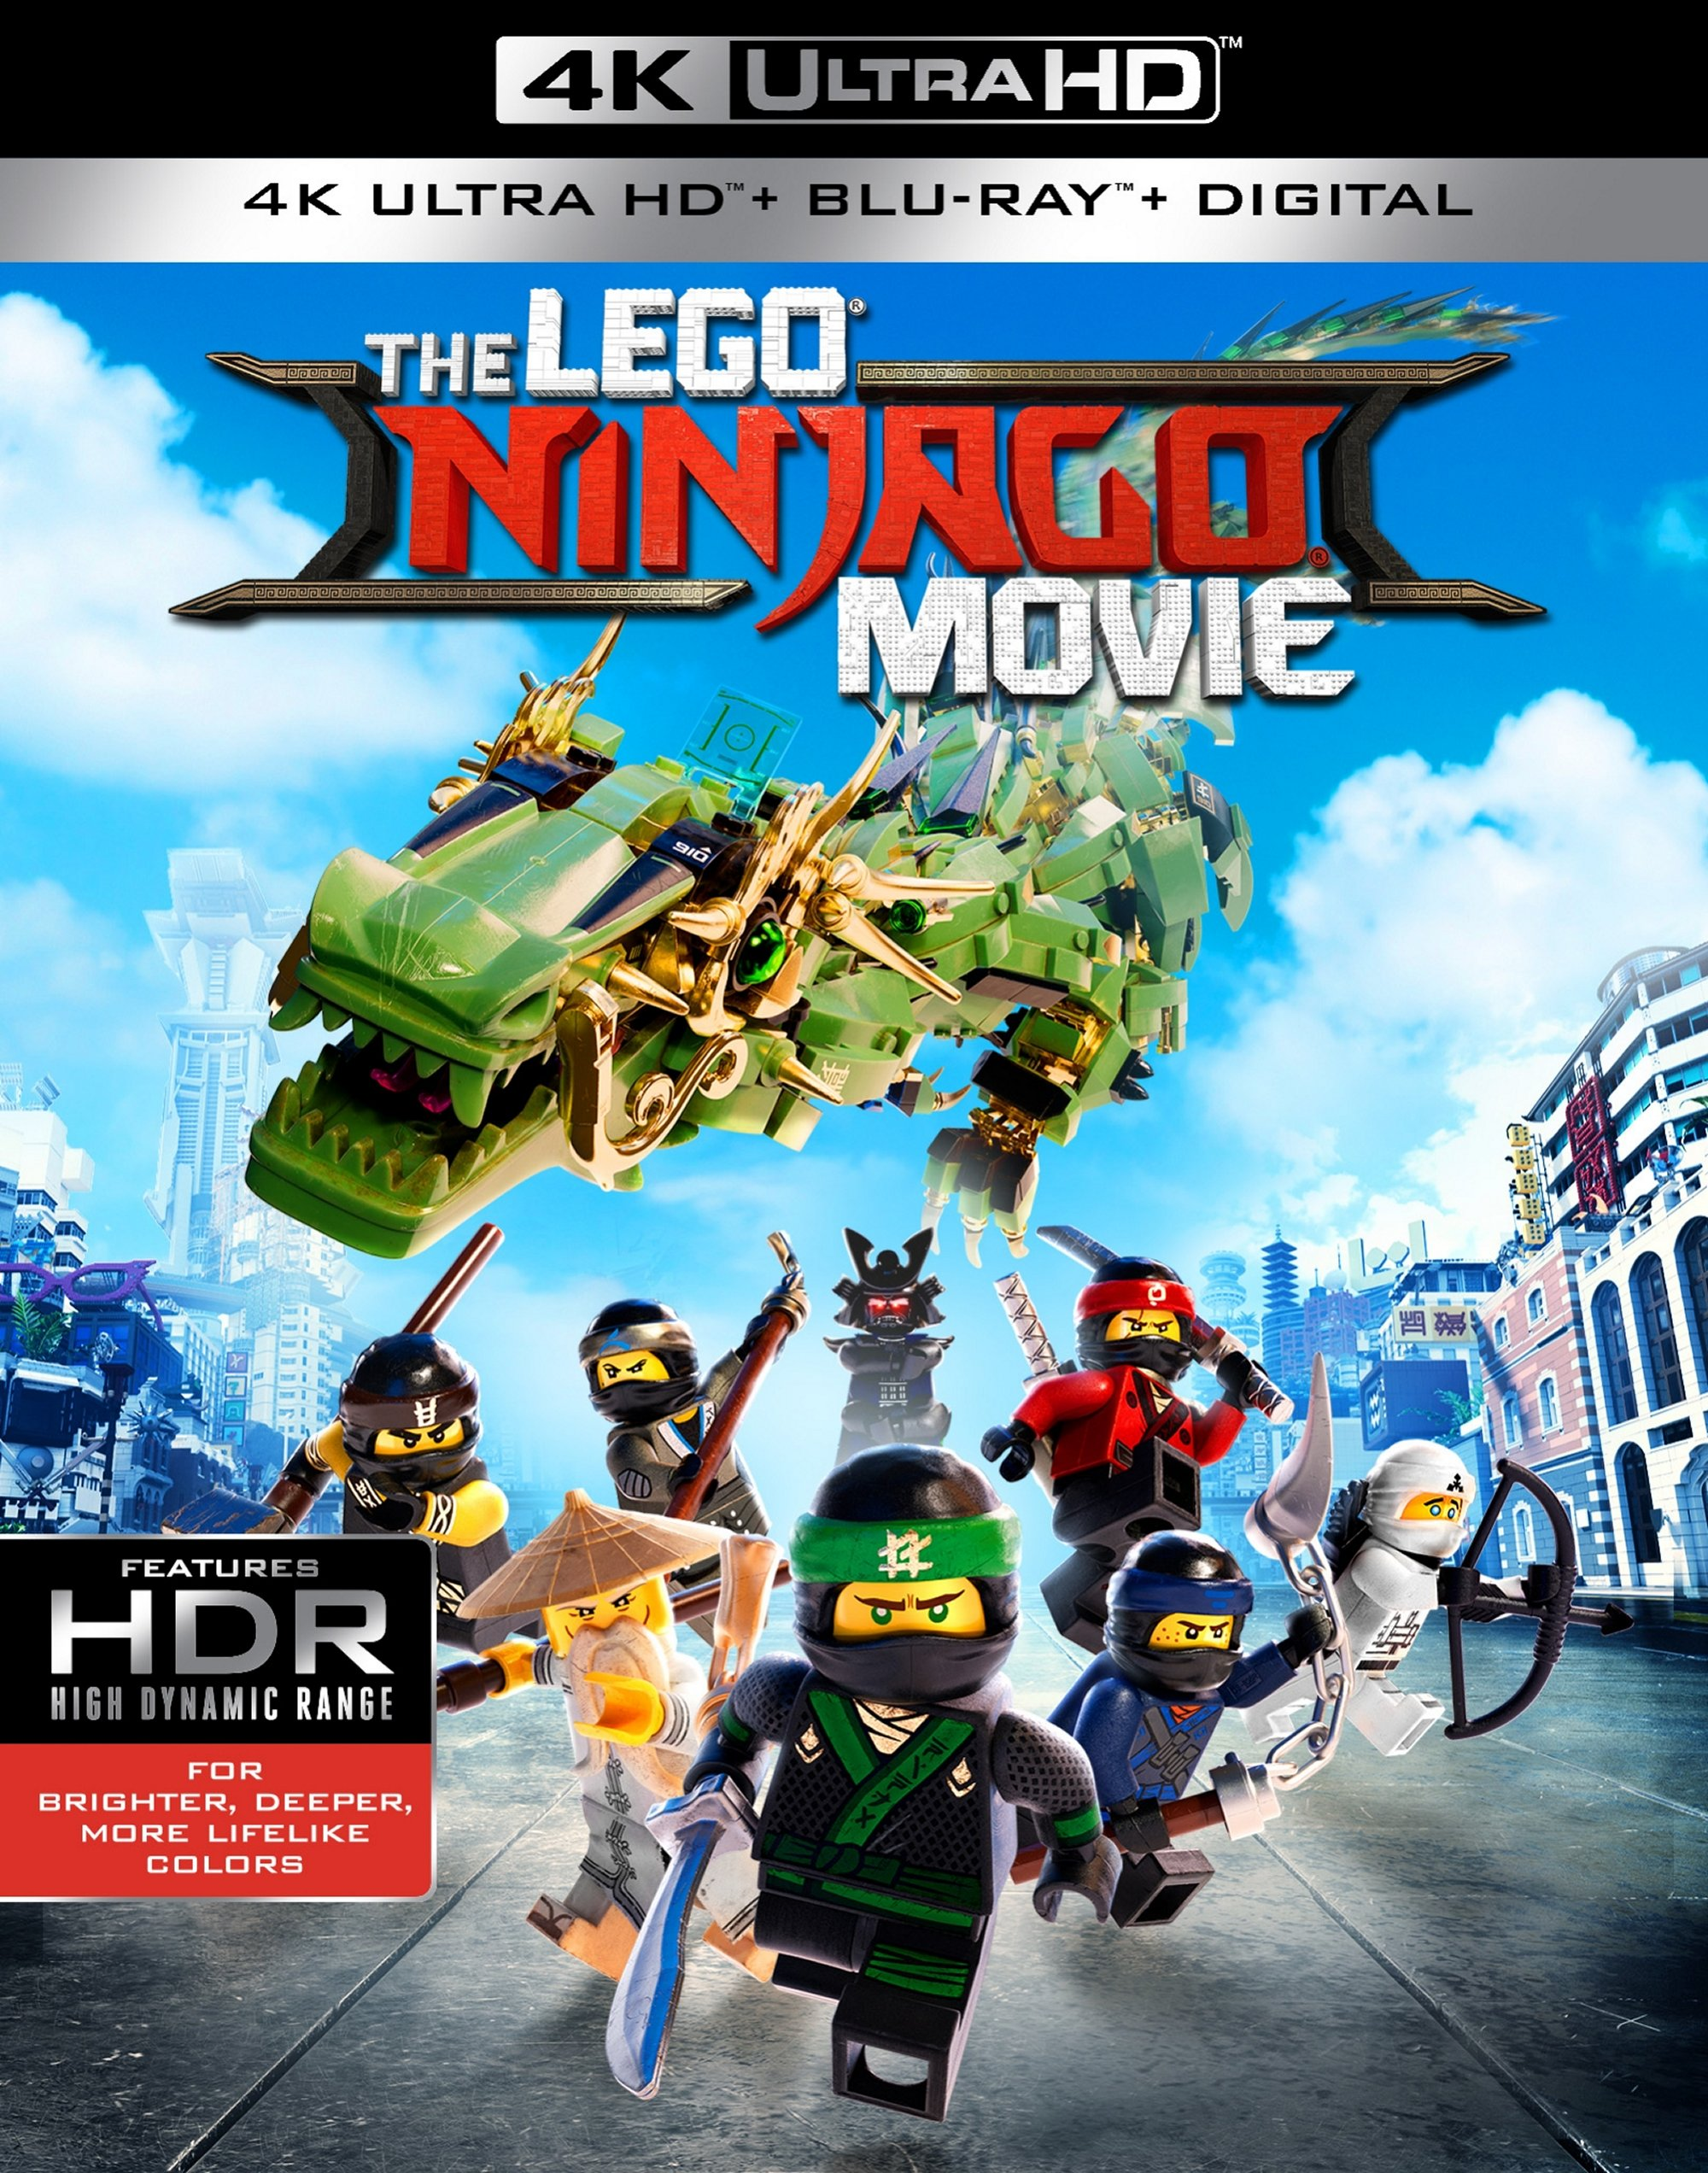 Own the lego ninjago movie on 4k ultra hd blu ray 3d blu ray blu satellite online and mobile channels and is a significant developer and publisher for console and online video game titles worldwide voltagebd Images